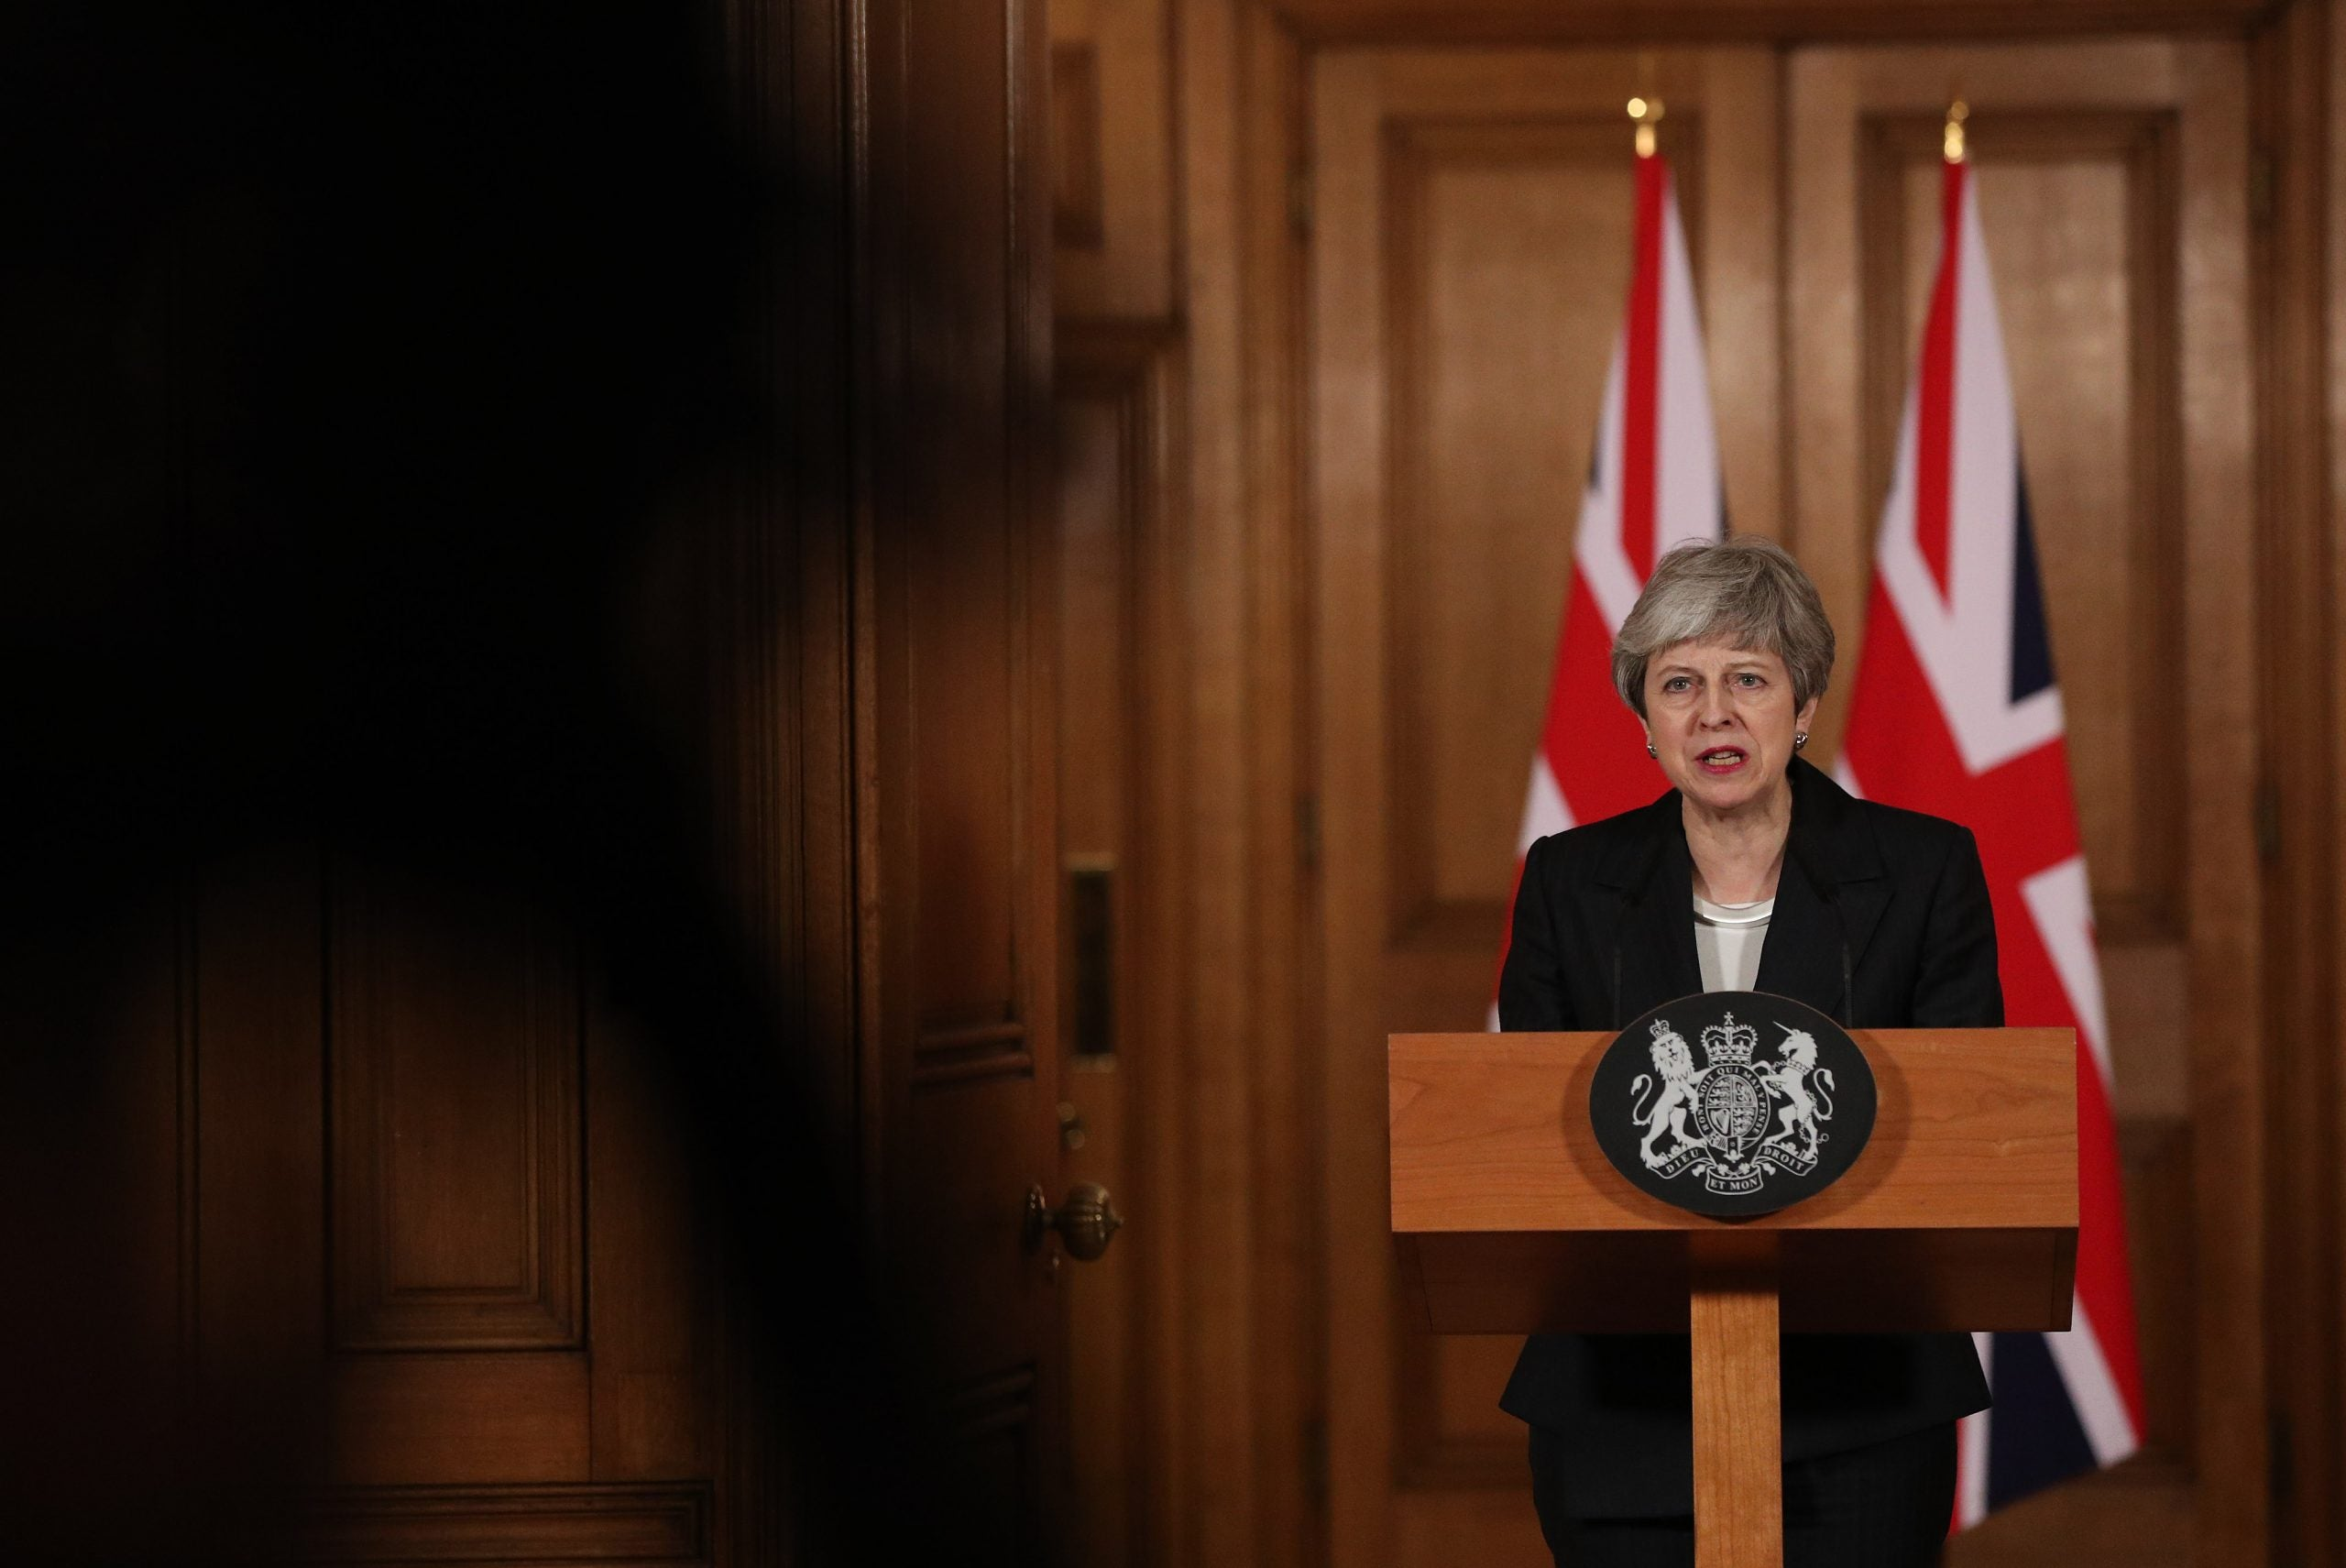 Theresa May's Trumpian statement was reminiscent of a sovereign dictator